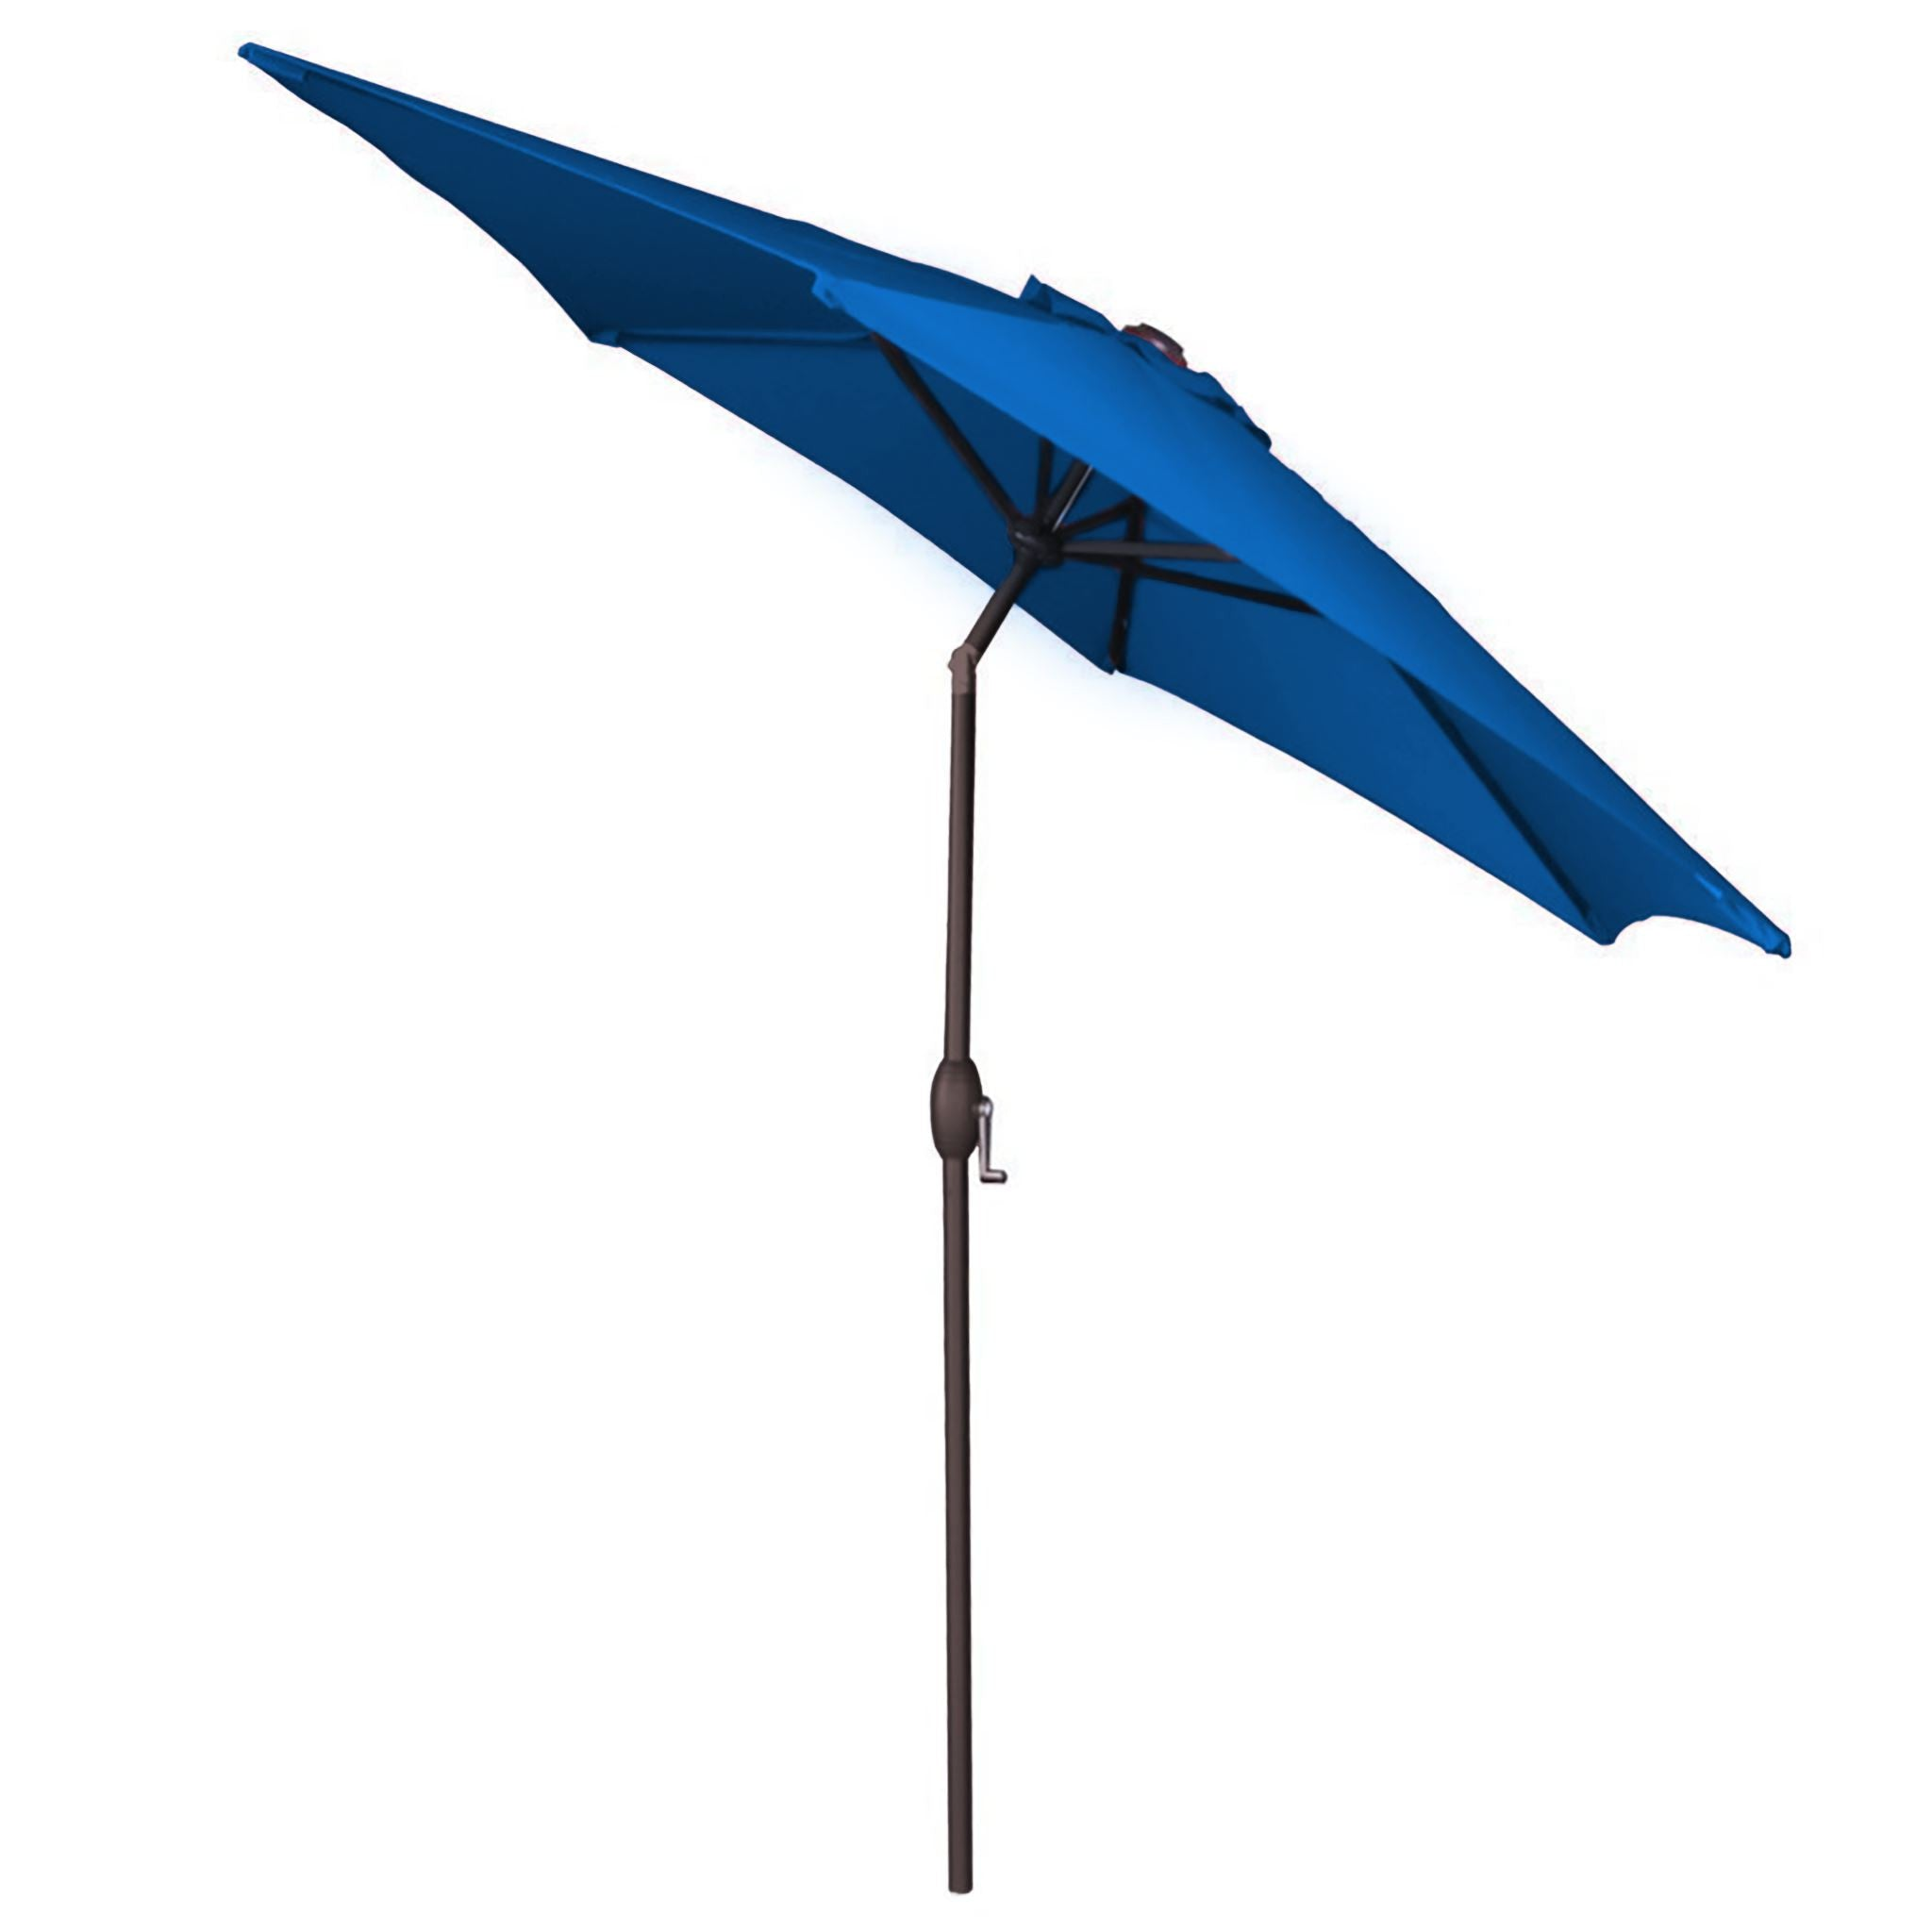 Panama Jack Blue 9 Ft Aluminum Patio Umbrella W/Crank PJO-6001-BLUE - BetterPatio.com  sc 1 st  Better Patio & Panama Jack Blue 9 Ft Aluminum Patio Umbrella W/Crank PJO-6001-BLUE ...